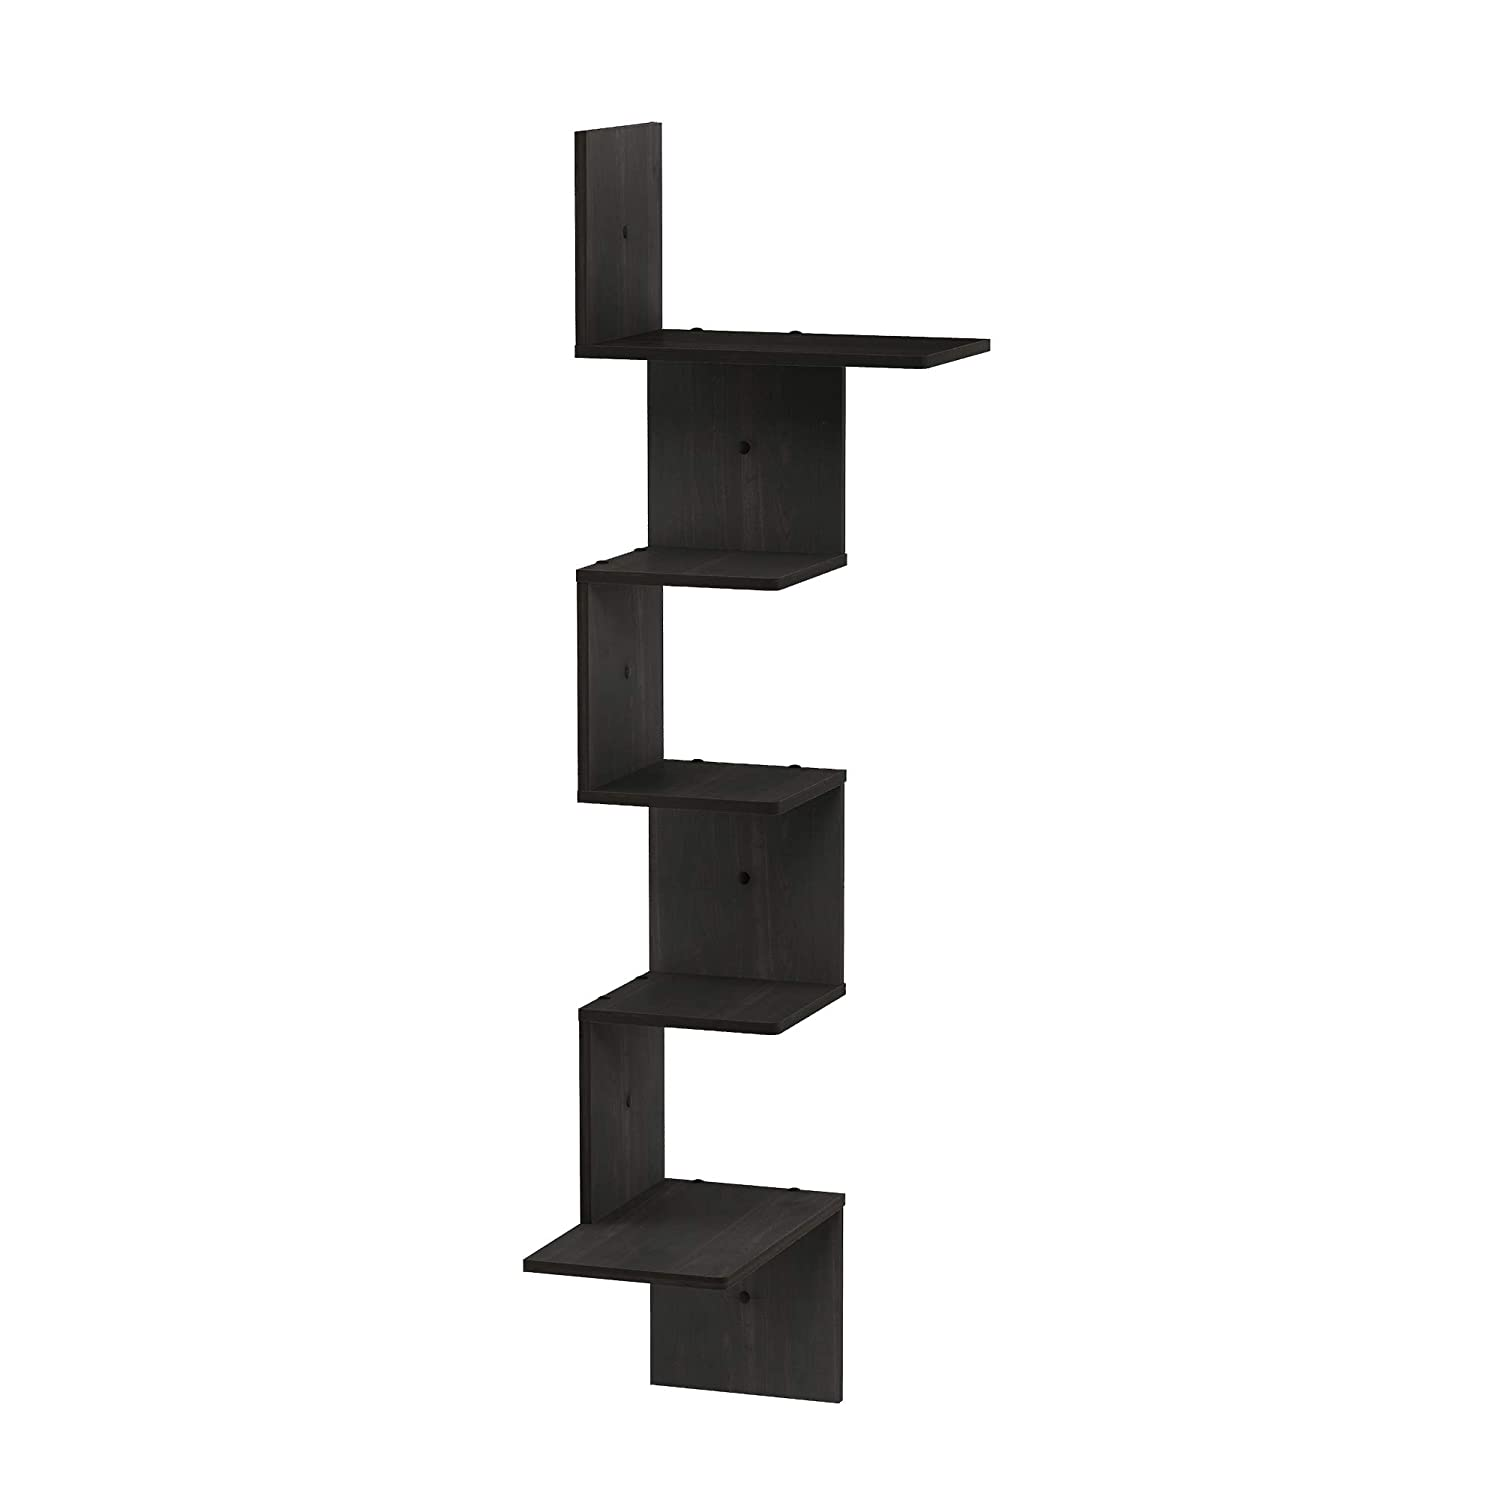 Furinno FR18046EX Rossi Wall Mounted Shelves, 5-Tier Rectangle, Espresso/Black